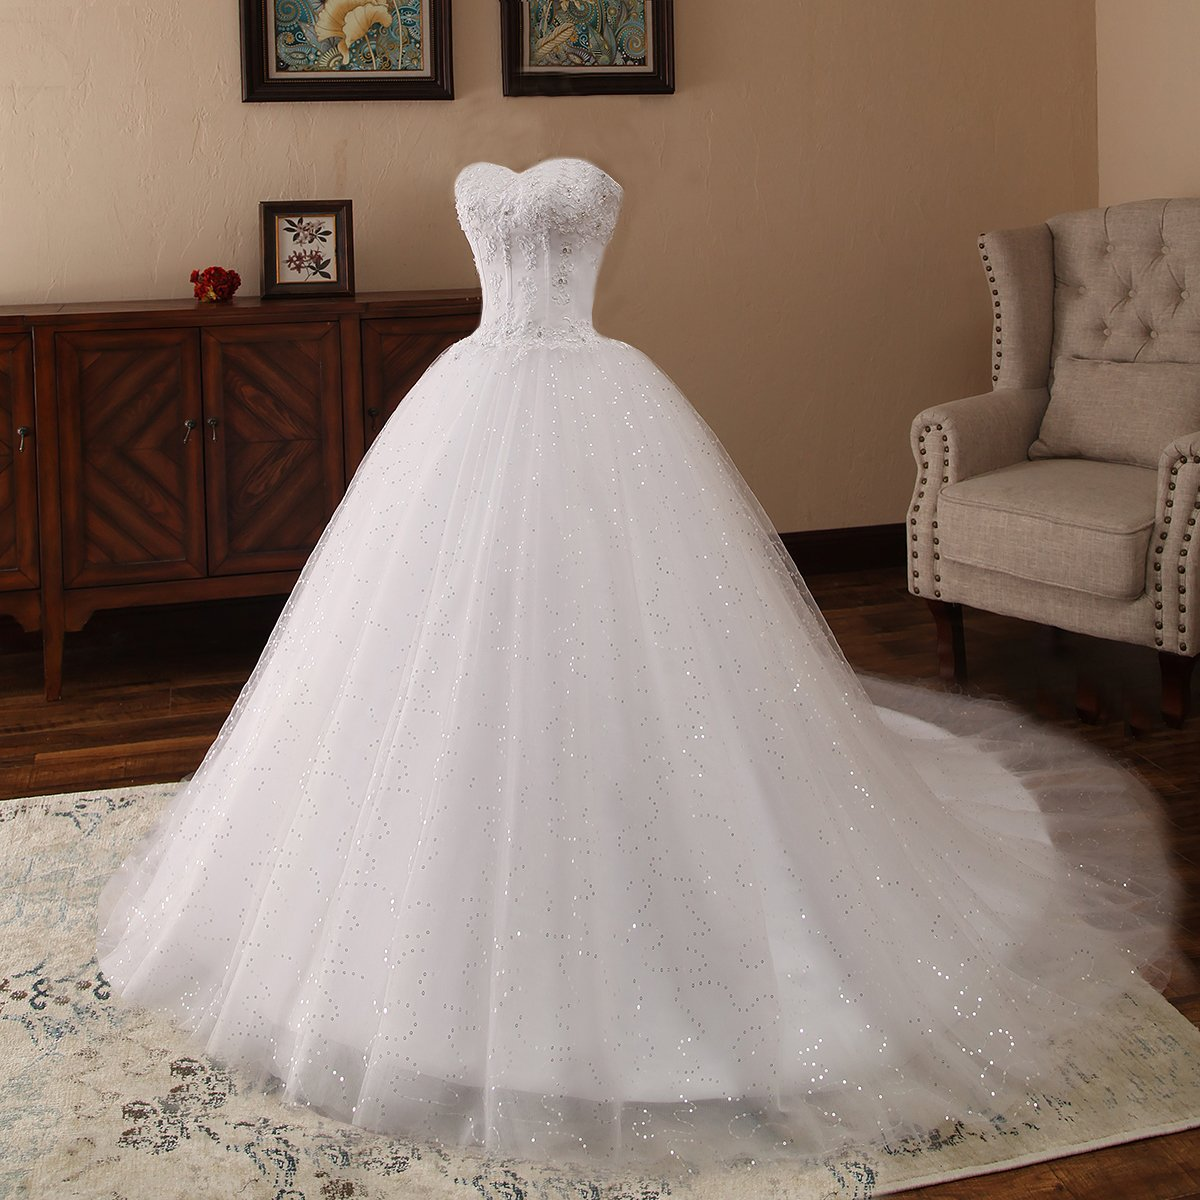 DingXuBao Womens Decals White//Ivory Lace Beads Wedding Dresses Beach Wedding Dresses Church Wedding Dresses